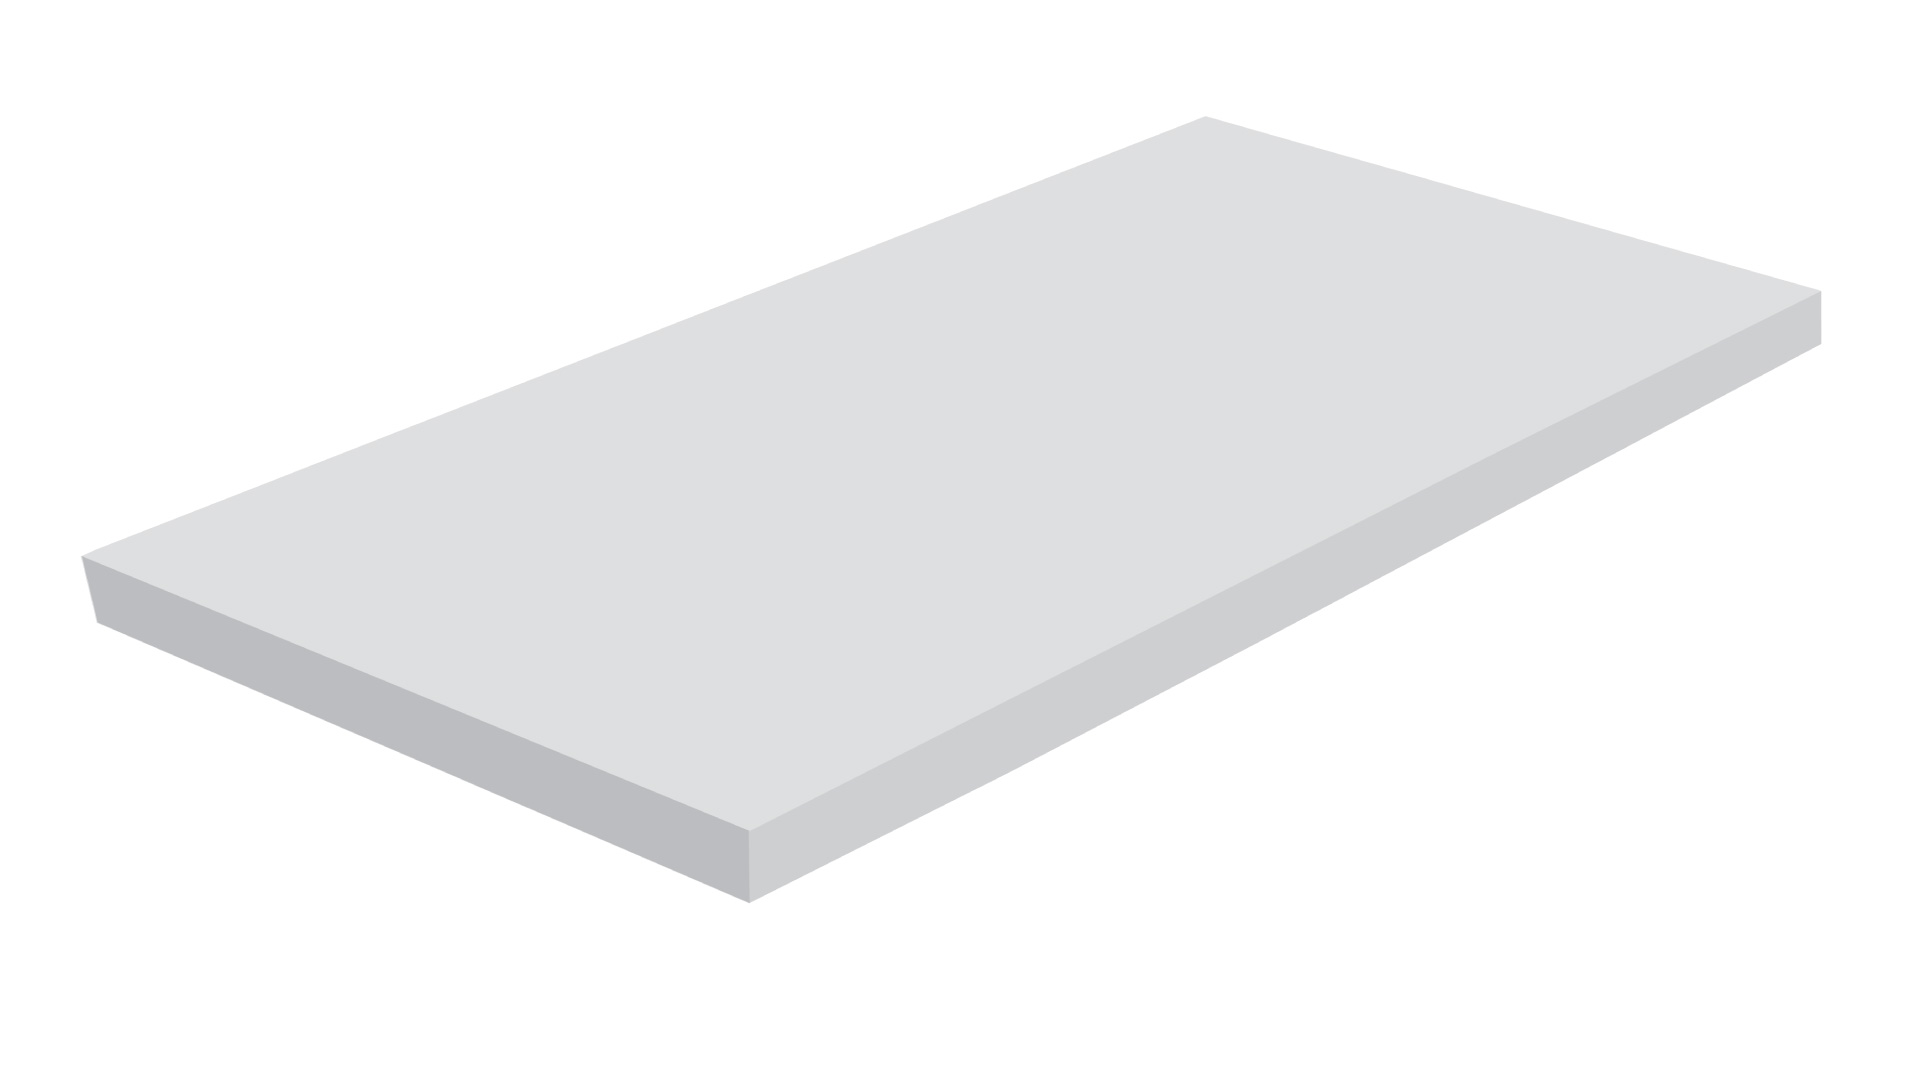 insulation material SCG Acoustic Ceiling Wondery